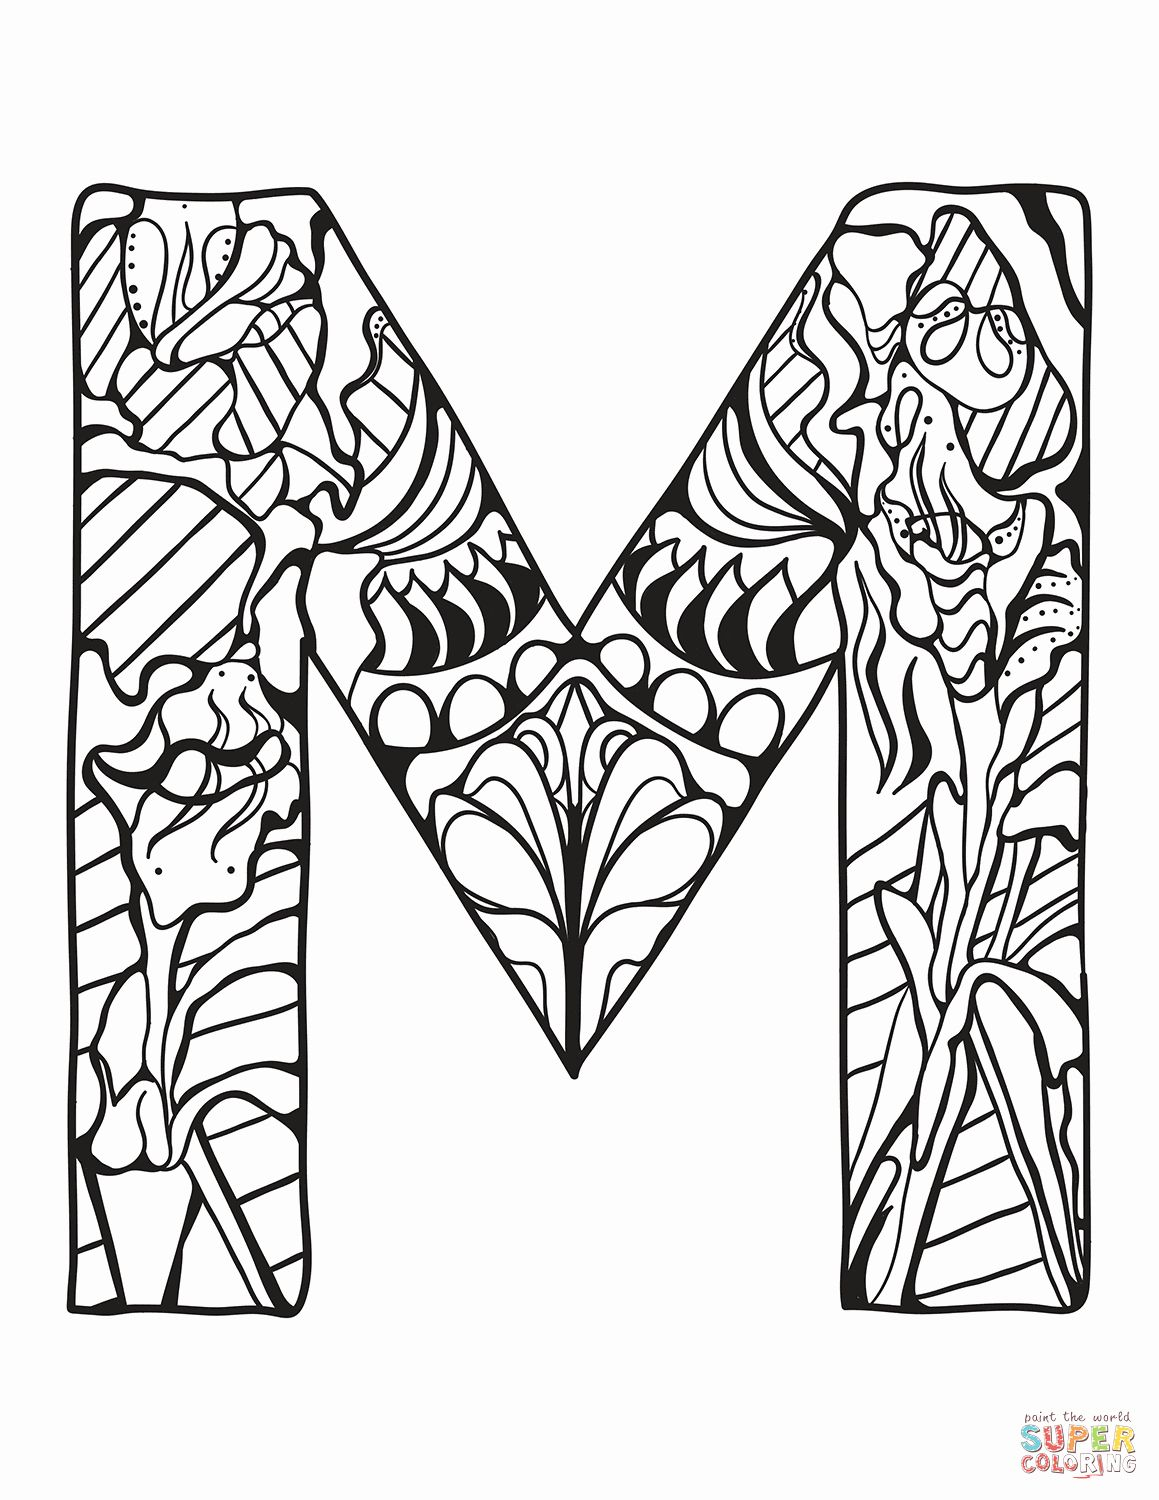 28 Letter M Coloring Page In 2020 Alphabet Coloring Pages Free Printable Coloring Pages Coloring Pages